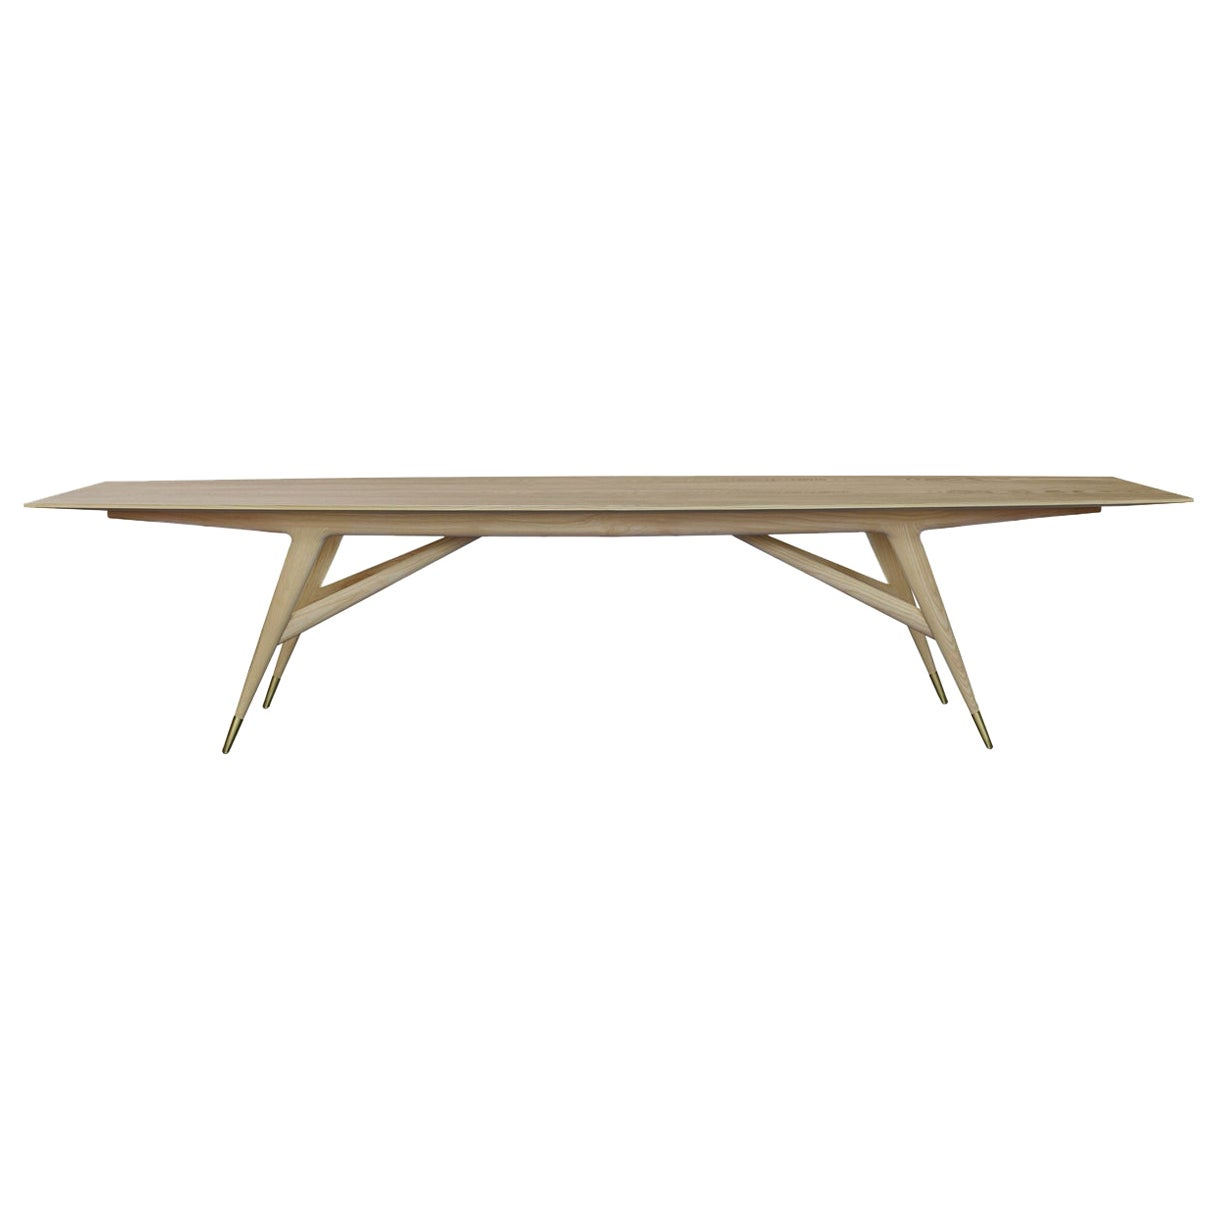 """Molteni&C D.859.1C Dining or Conference Table 142"""" in Ash Wood by Gio Ponti"""